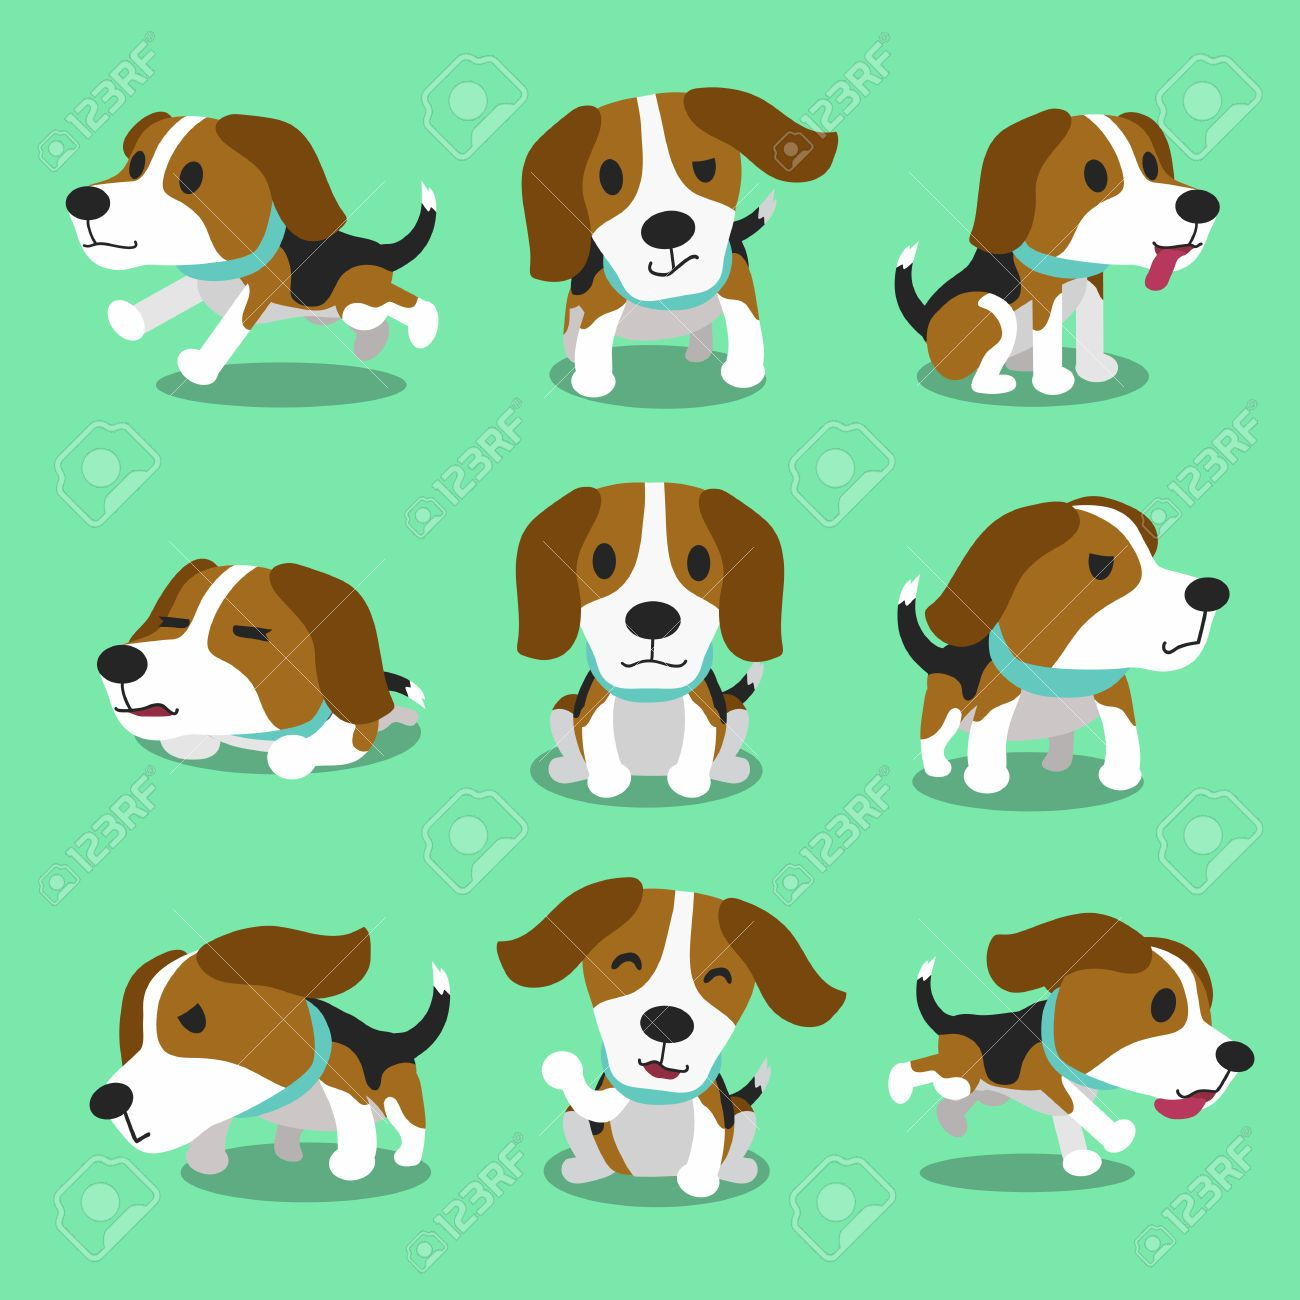 Cartoon Character Beagle Dog Poses Cartoon Dog Beagle Dog Beagle Art